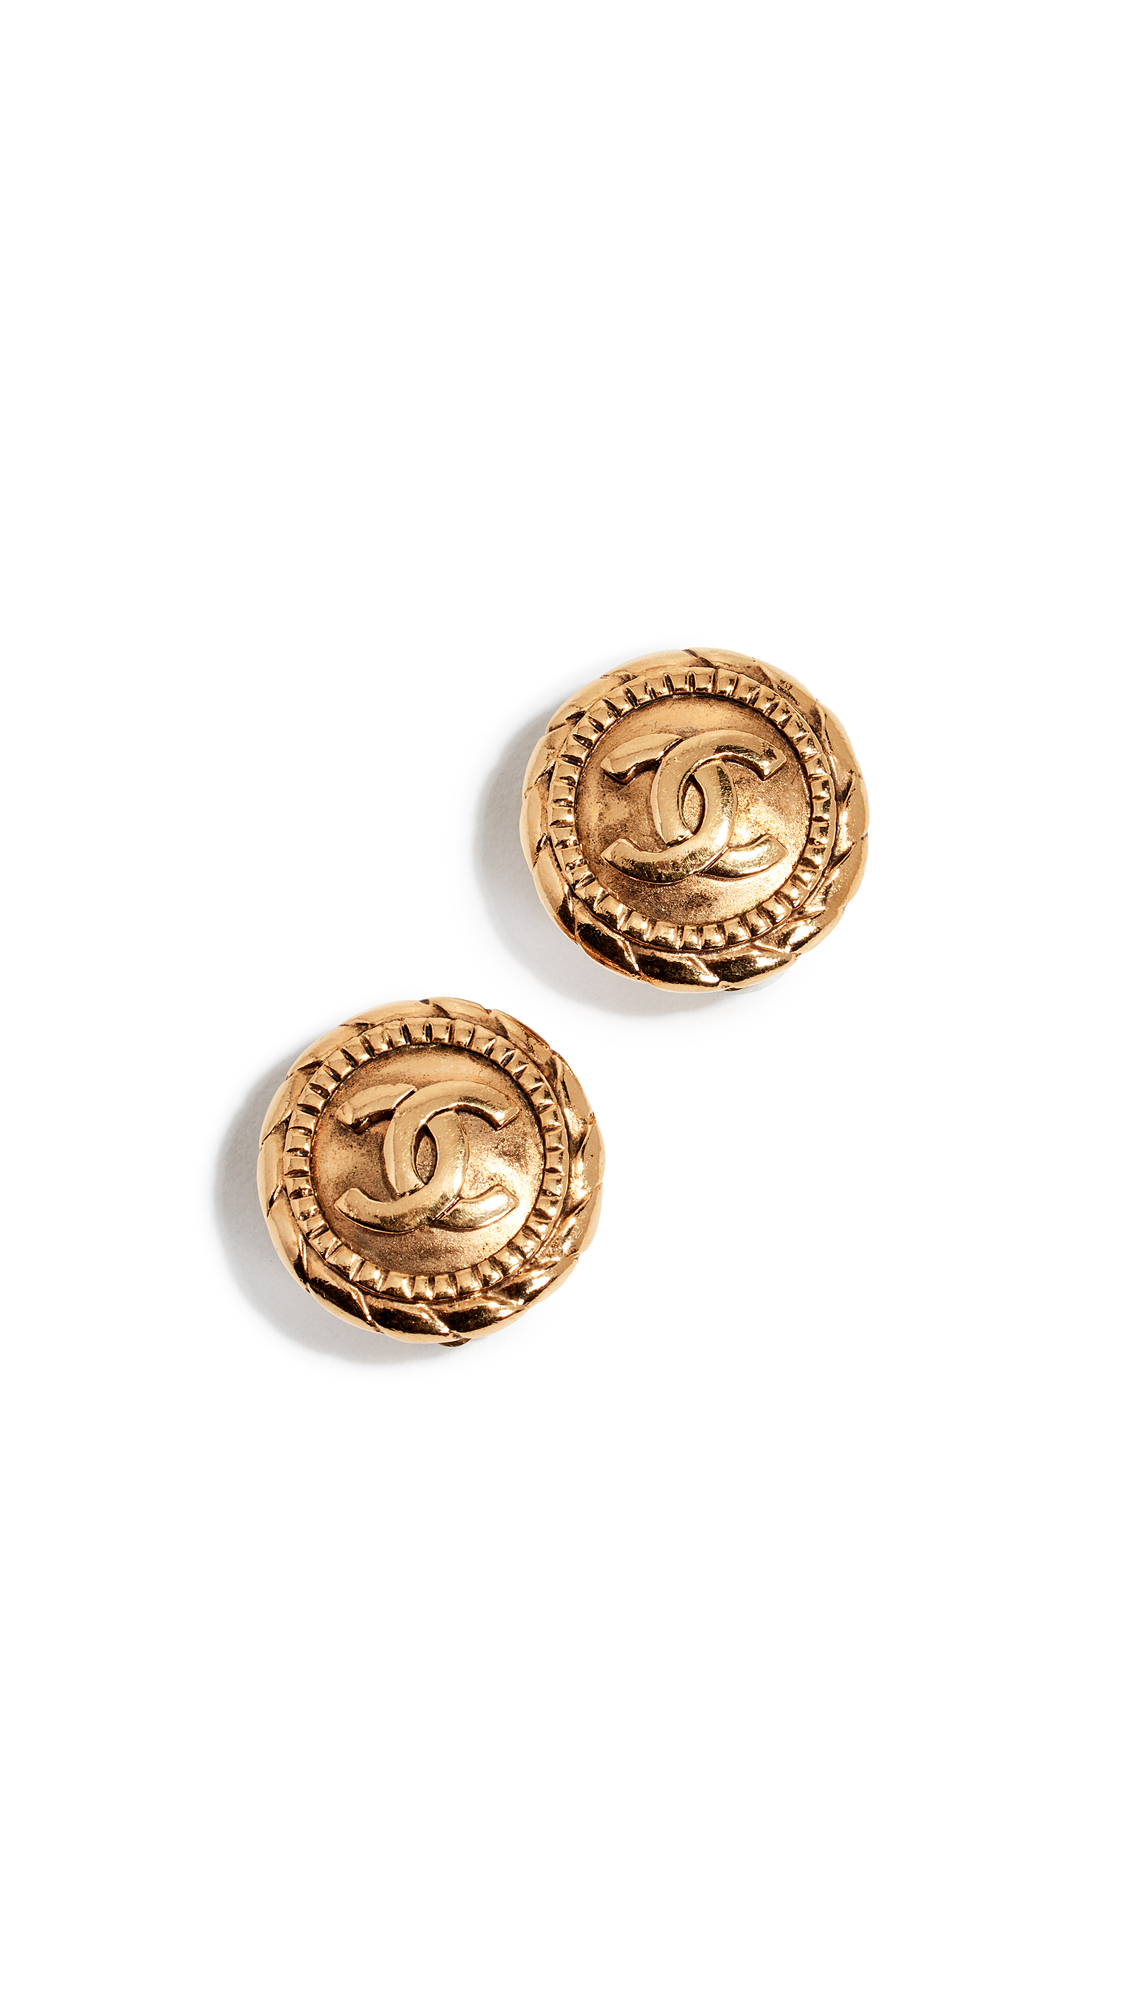 WHAT GOES AROUND COMES AROUND Chanel Gold Rope Edge Cc Earrings